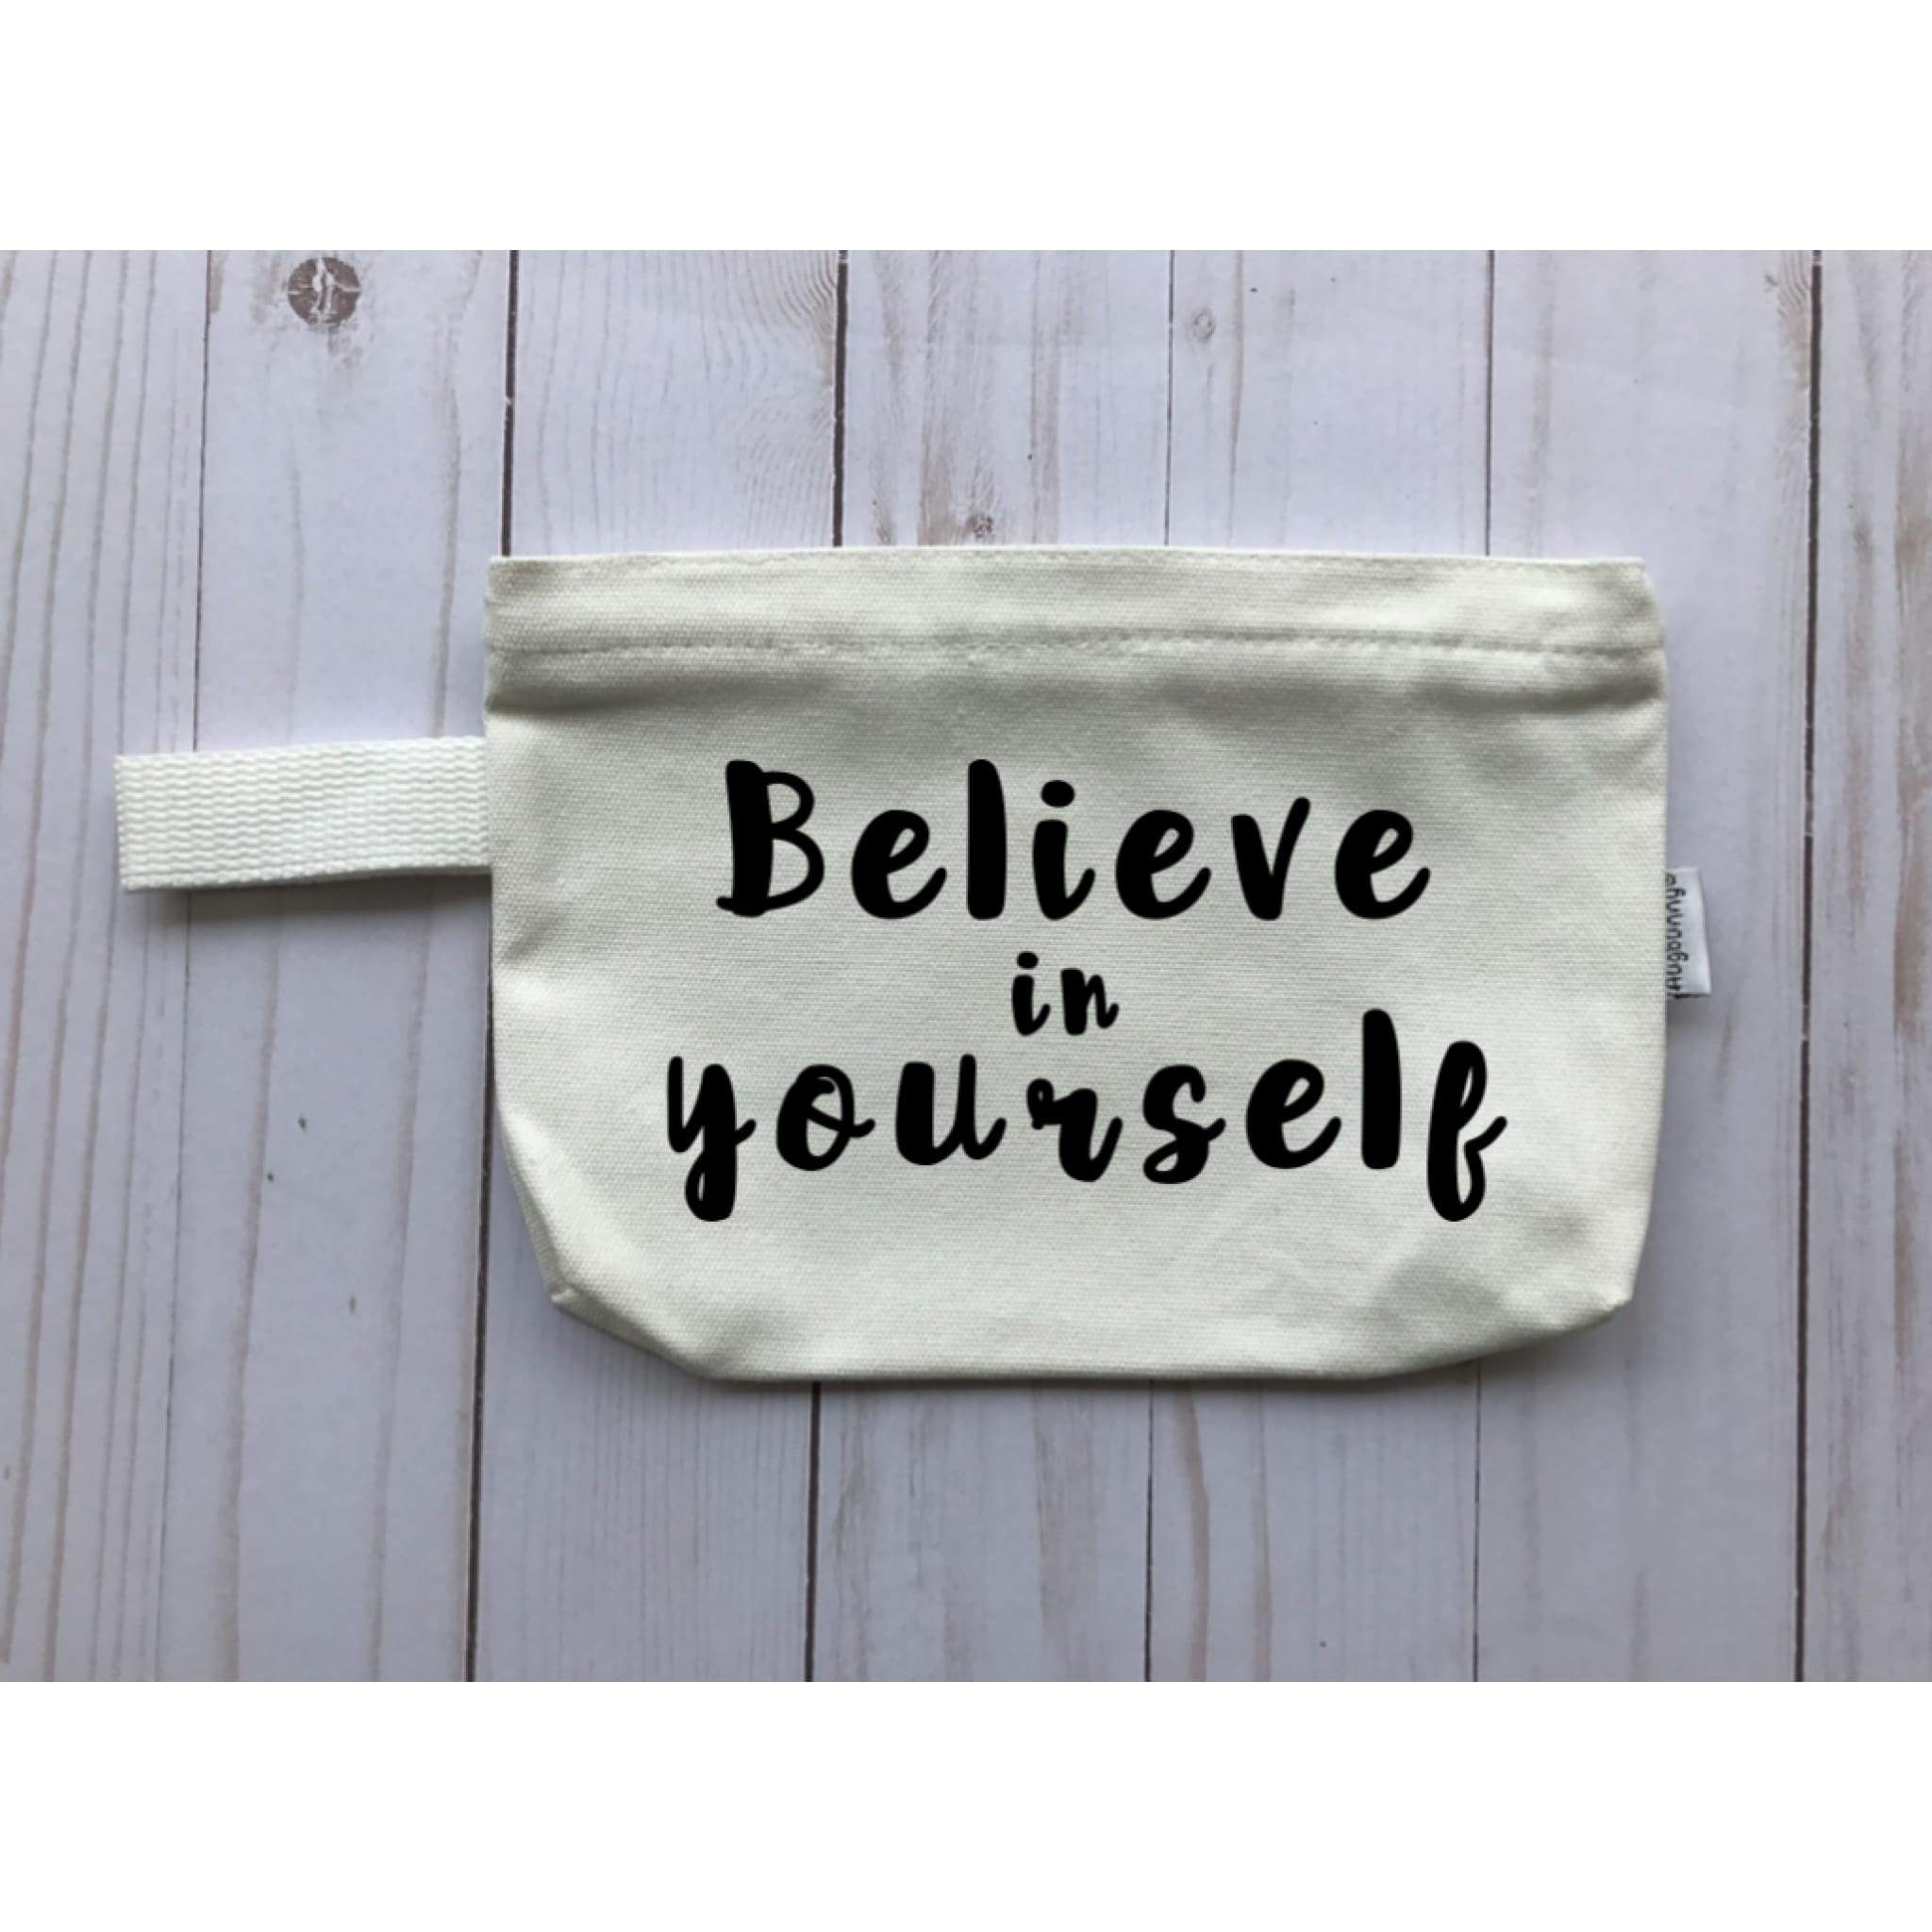 Believe in Yourself - Michelle's Gift Studio